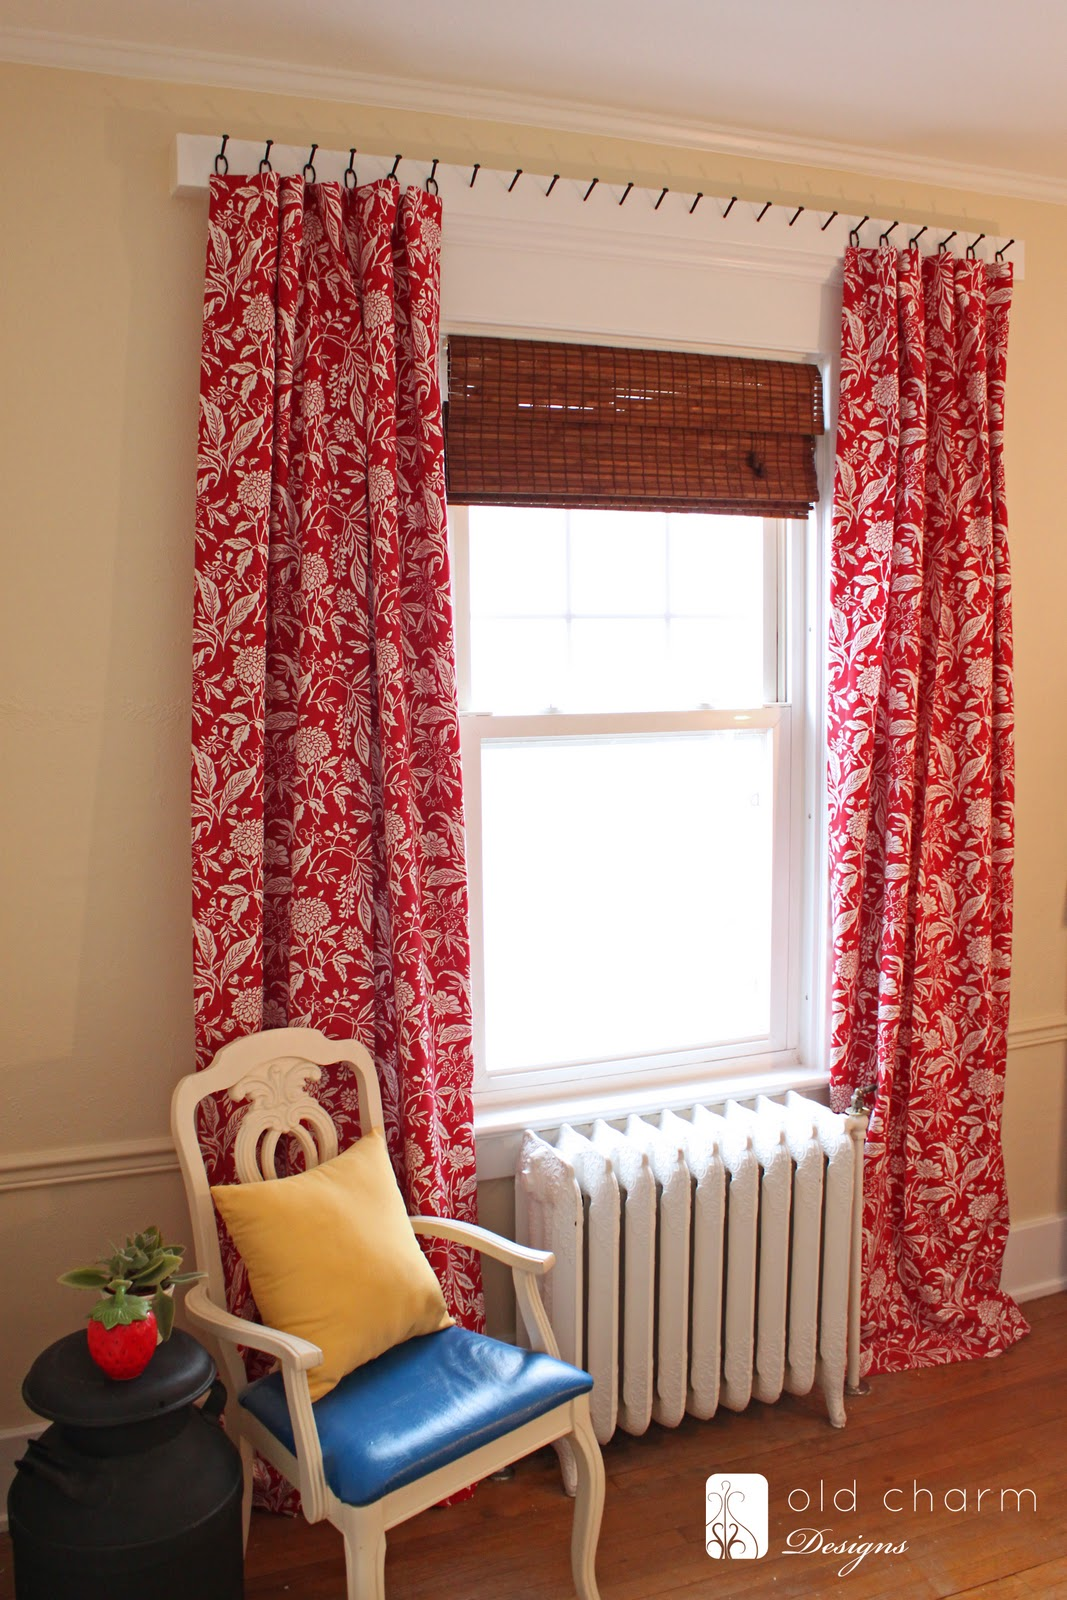 Curtains Hung with Forged Nails {DIY Curtain Rod!} - The ...